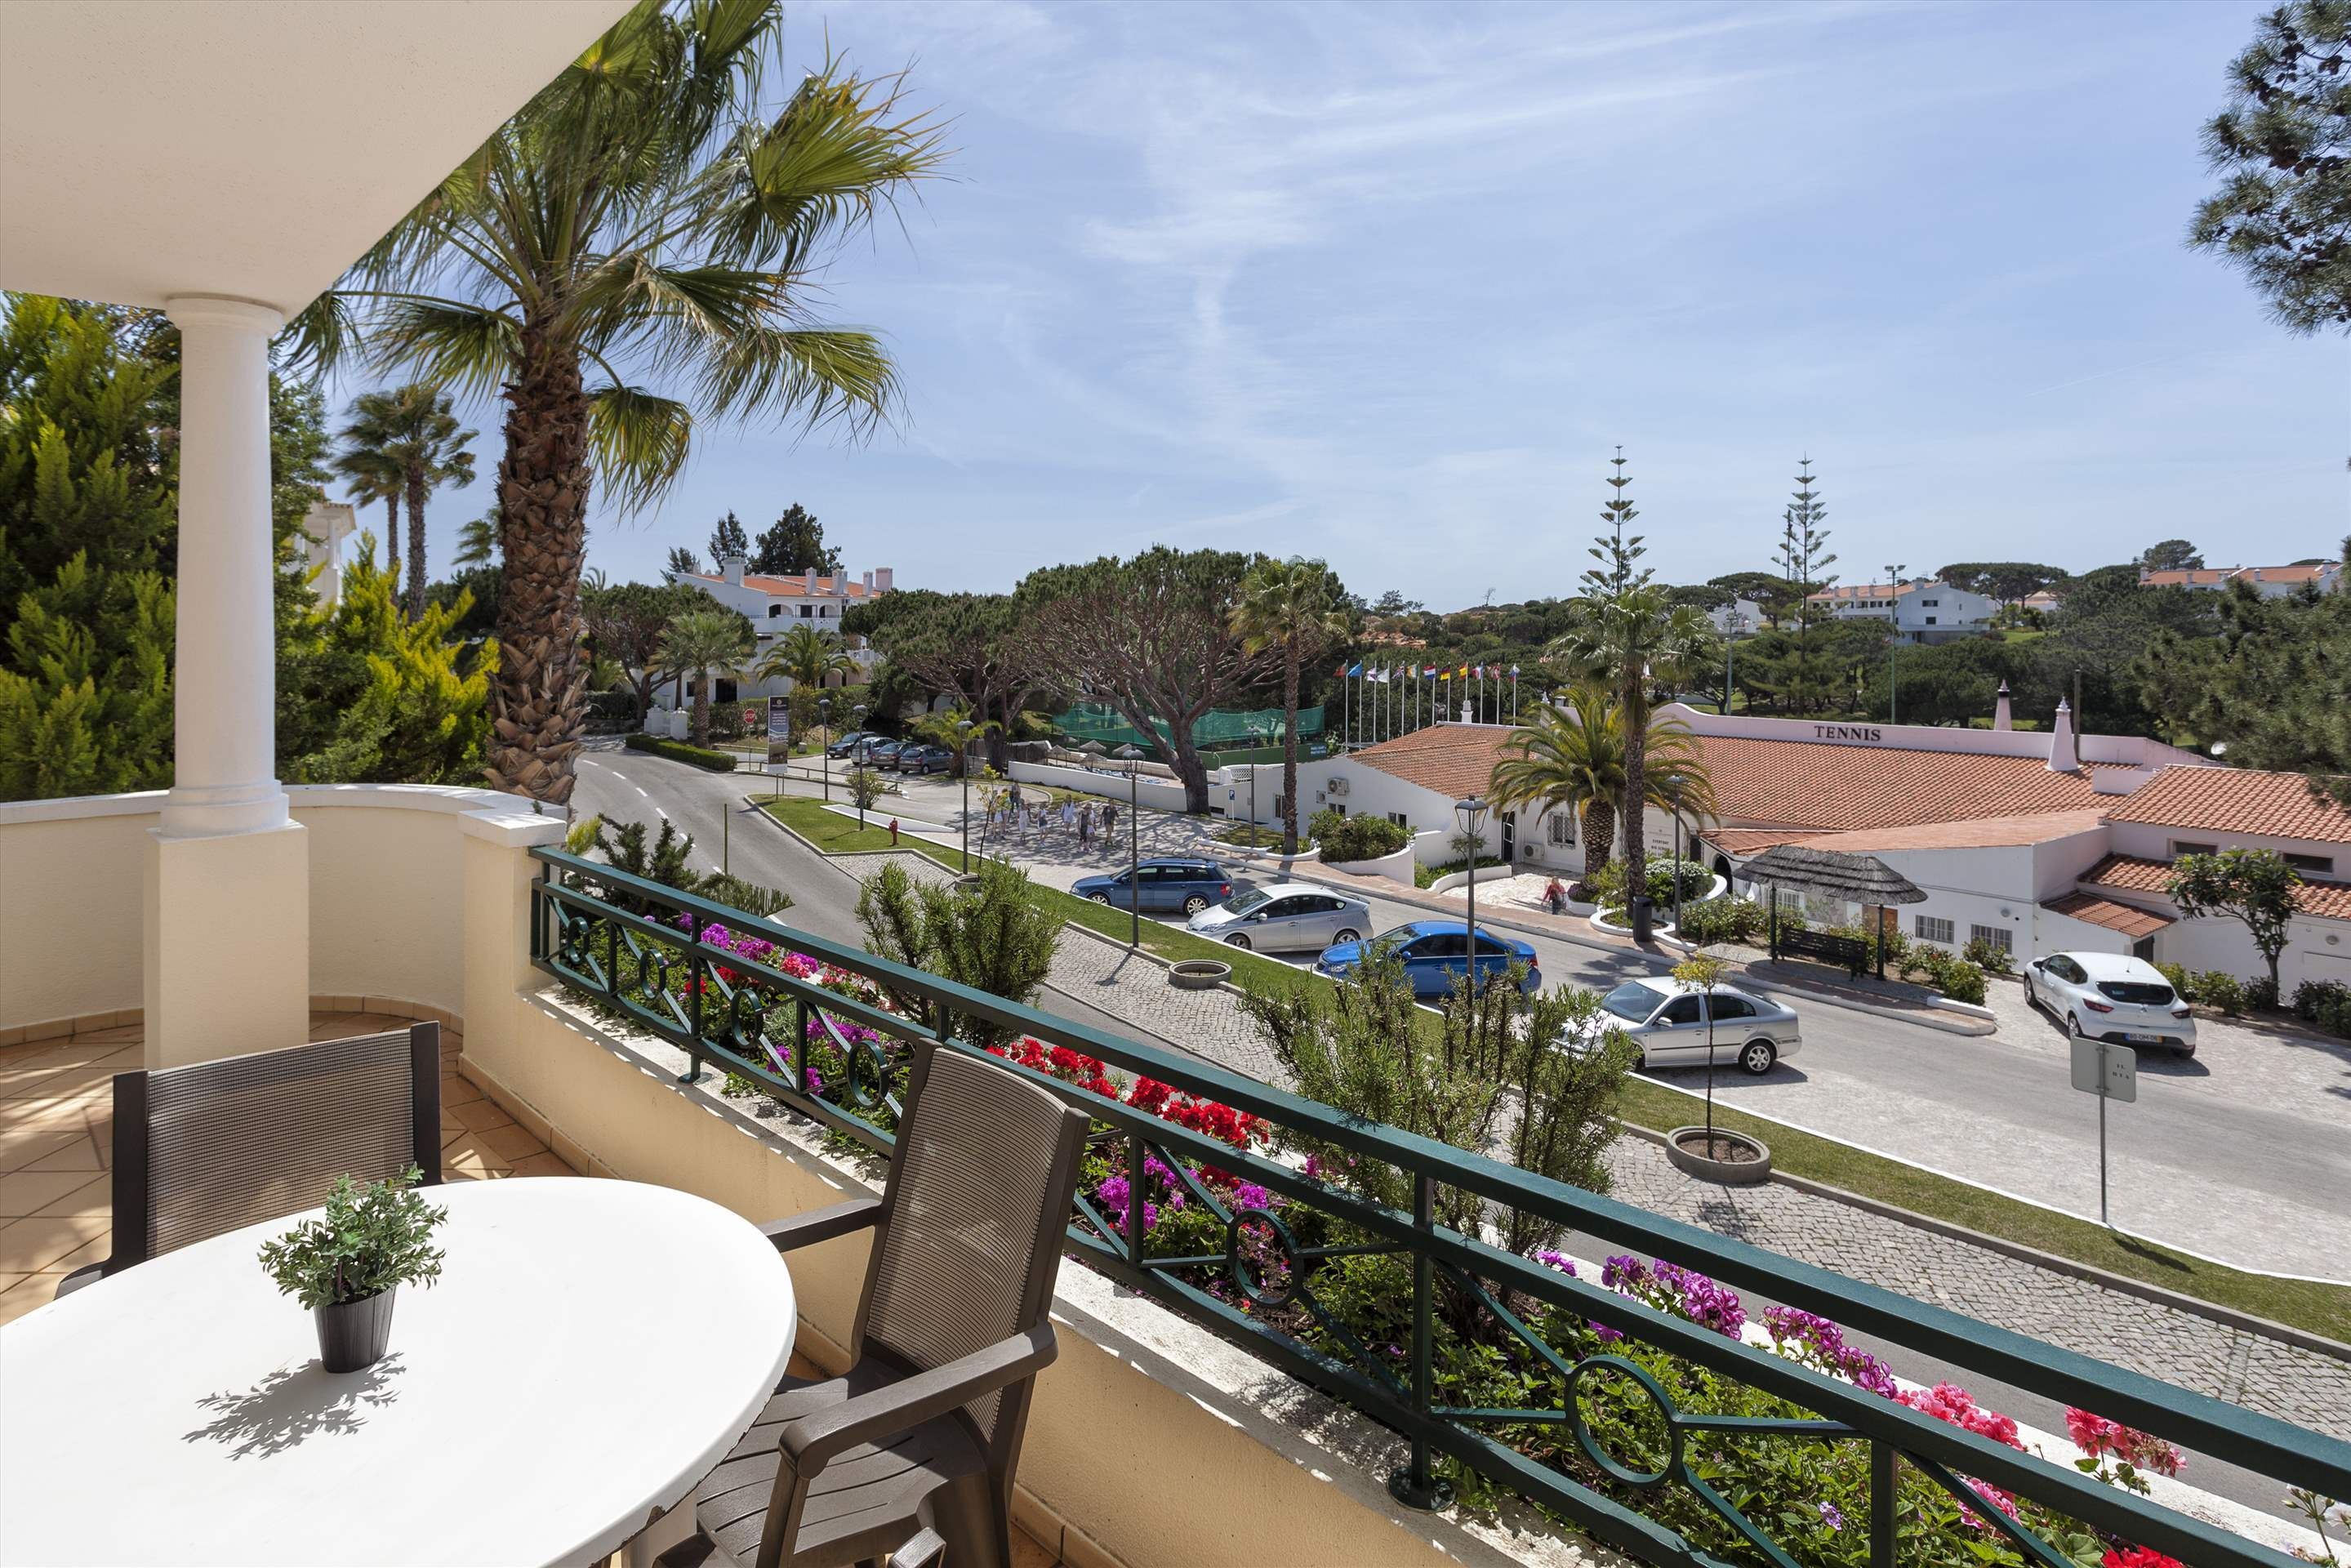 Apartment Romaine, 3 bedroom apartment in Vale do Lobo, Algarve Photo #7